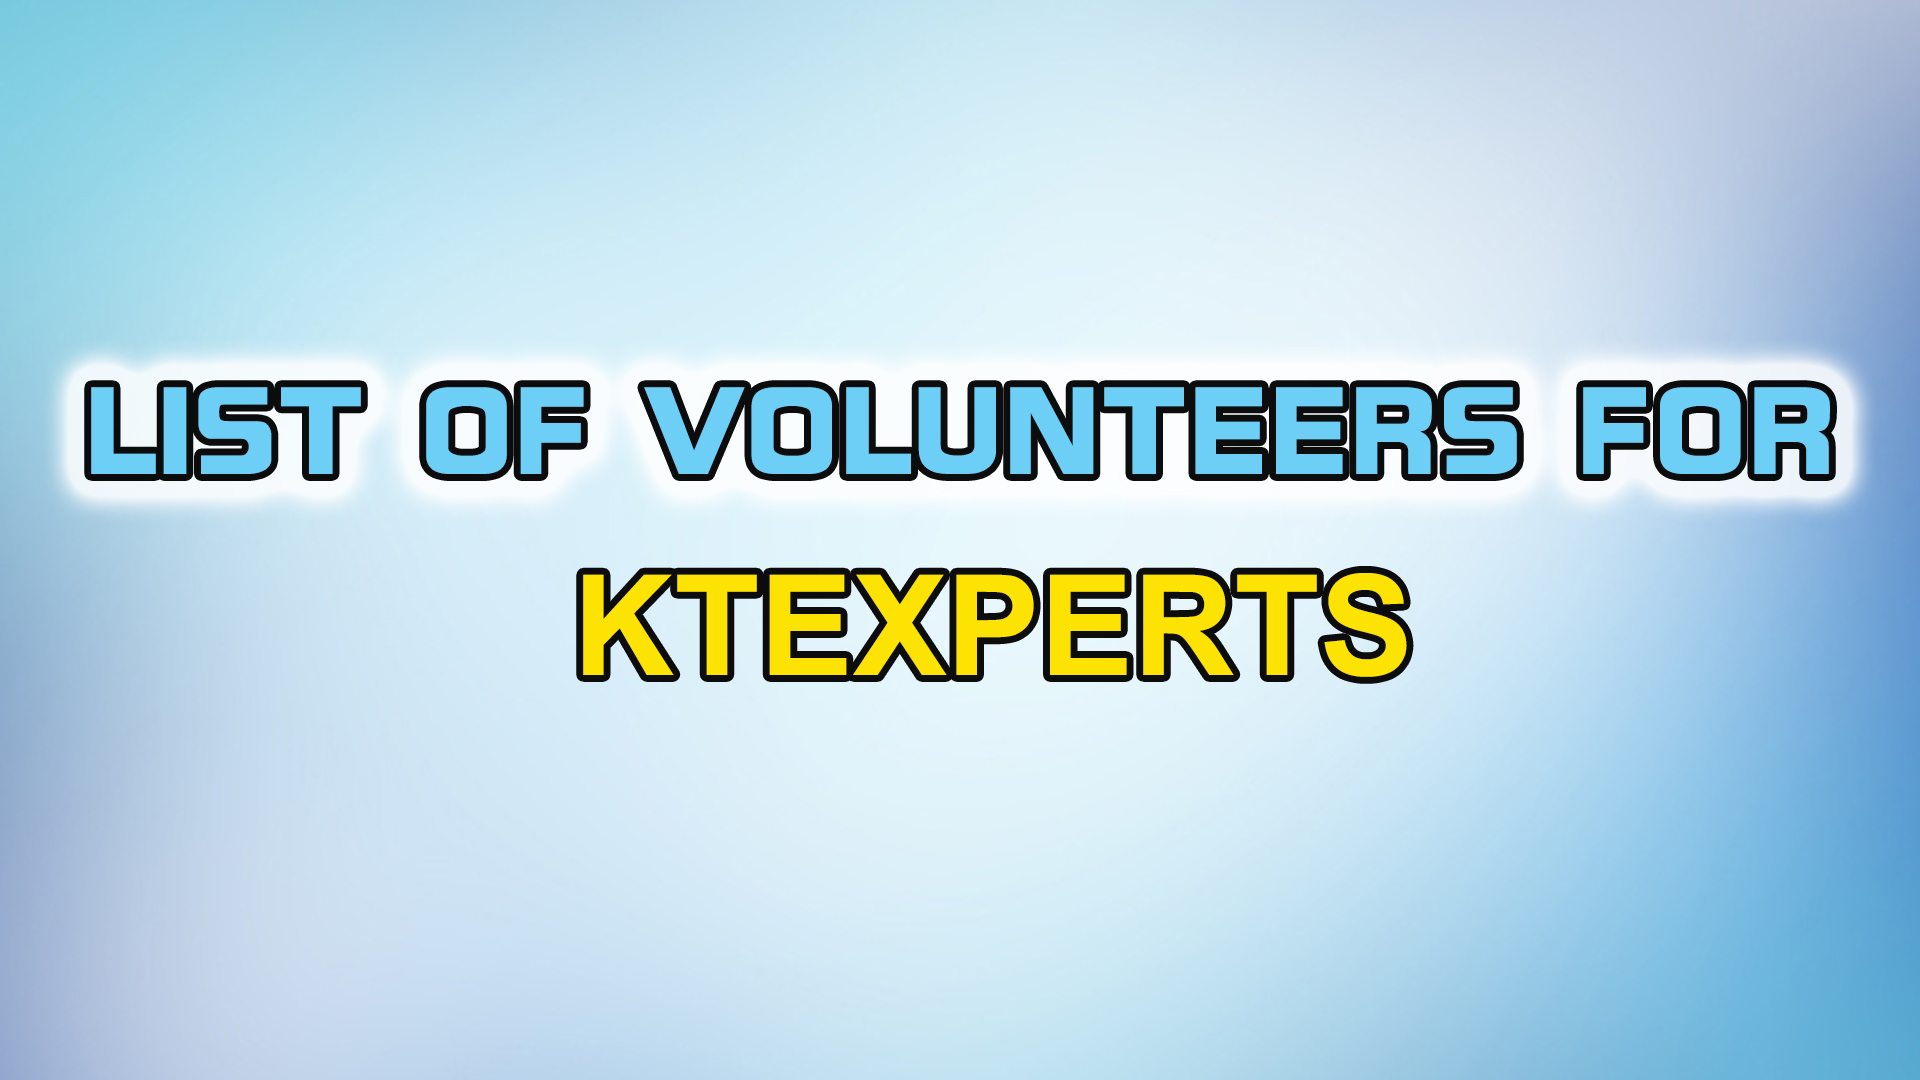 List of Volunteers for KTEXPERTS